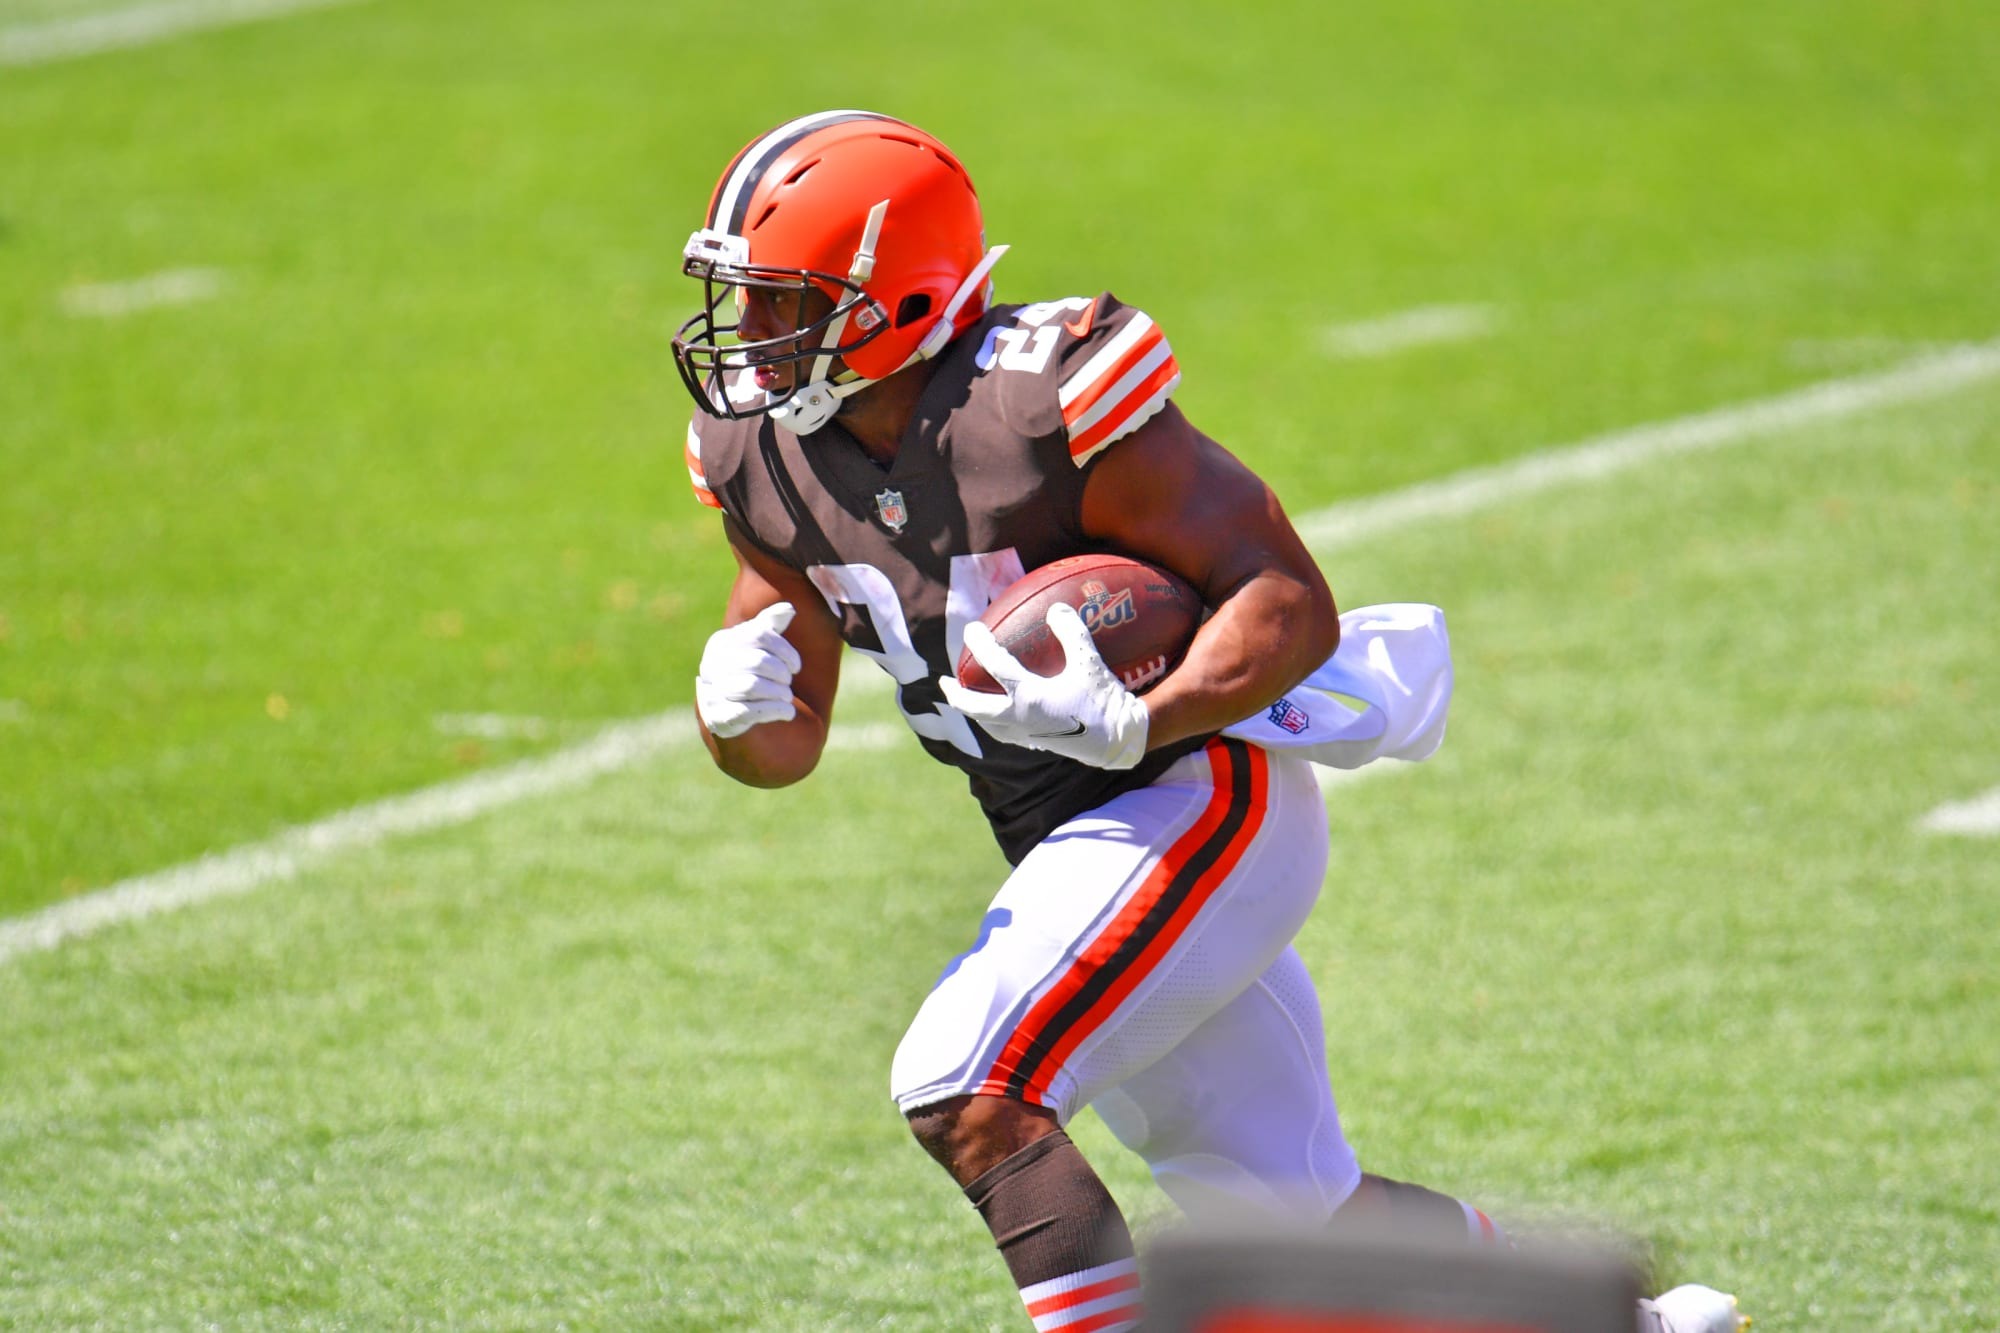 Nick Chubb was a hungry Dawg on this Browns touchdown run (Video)